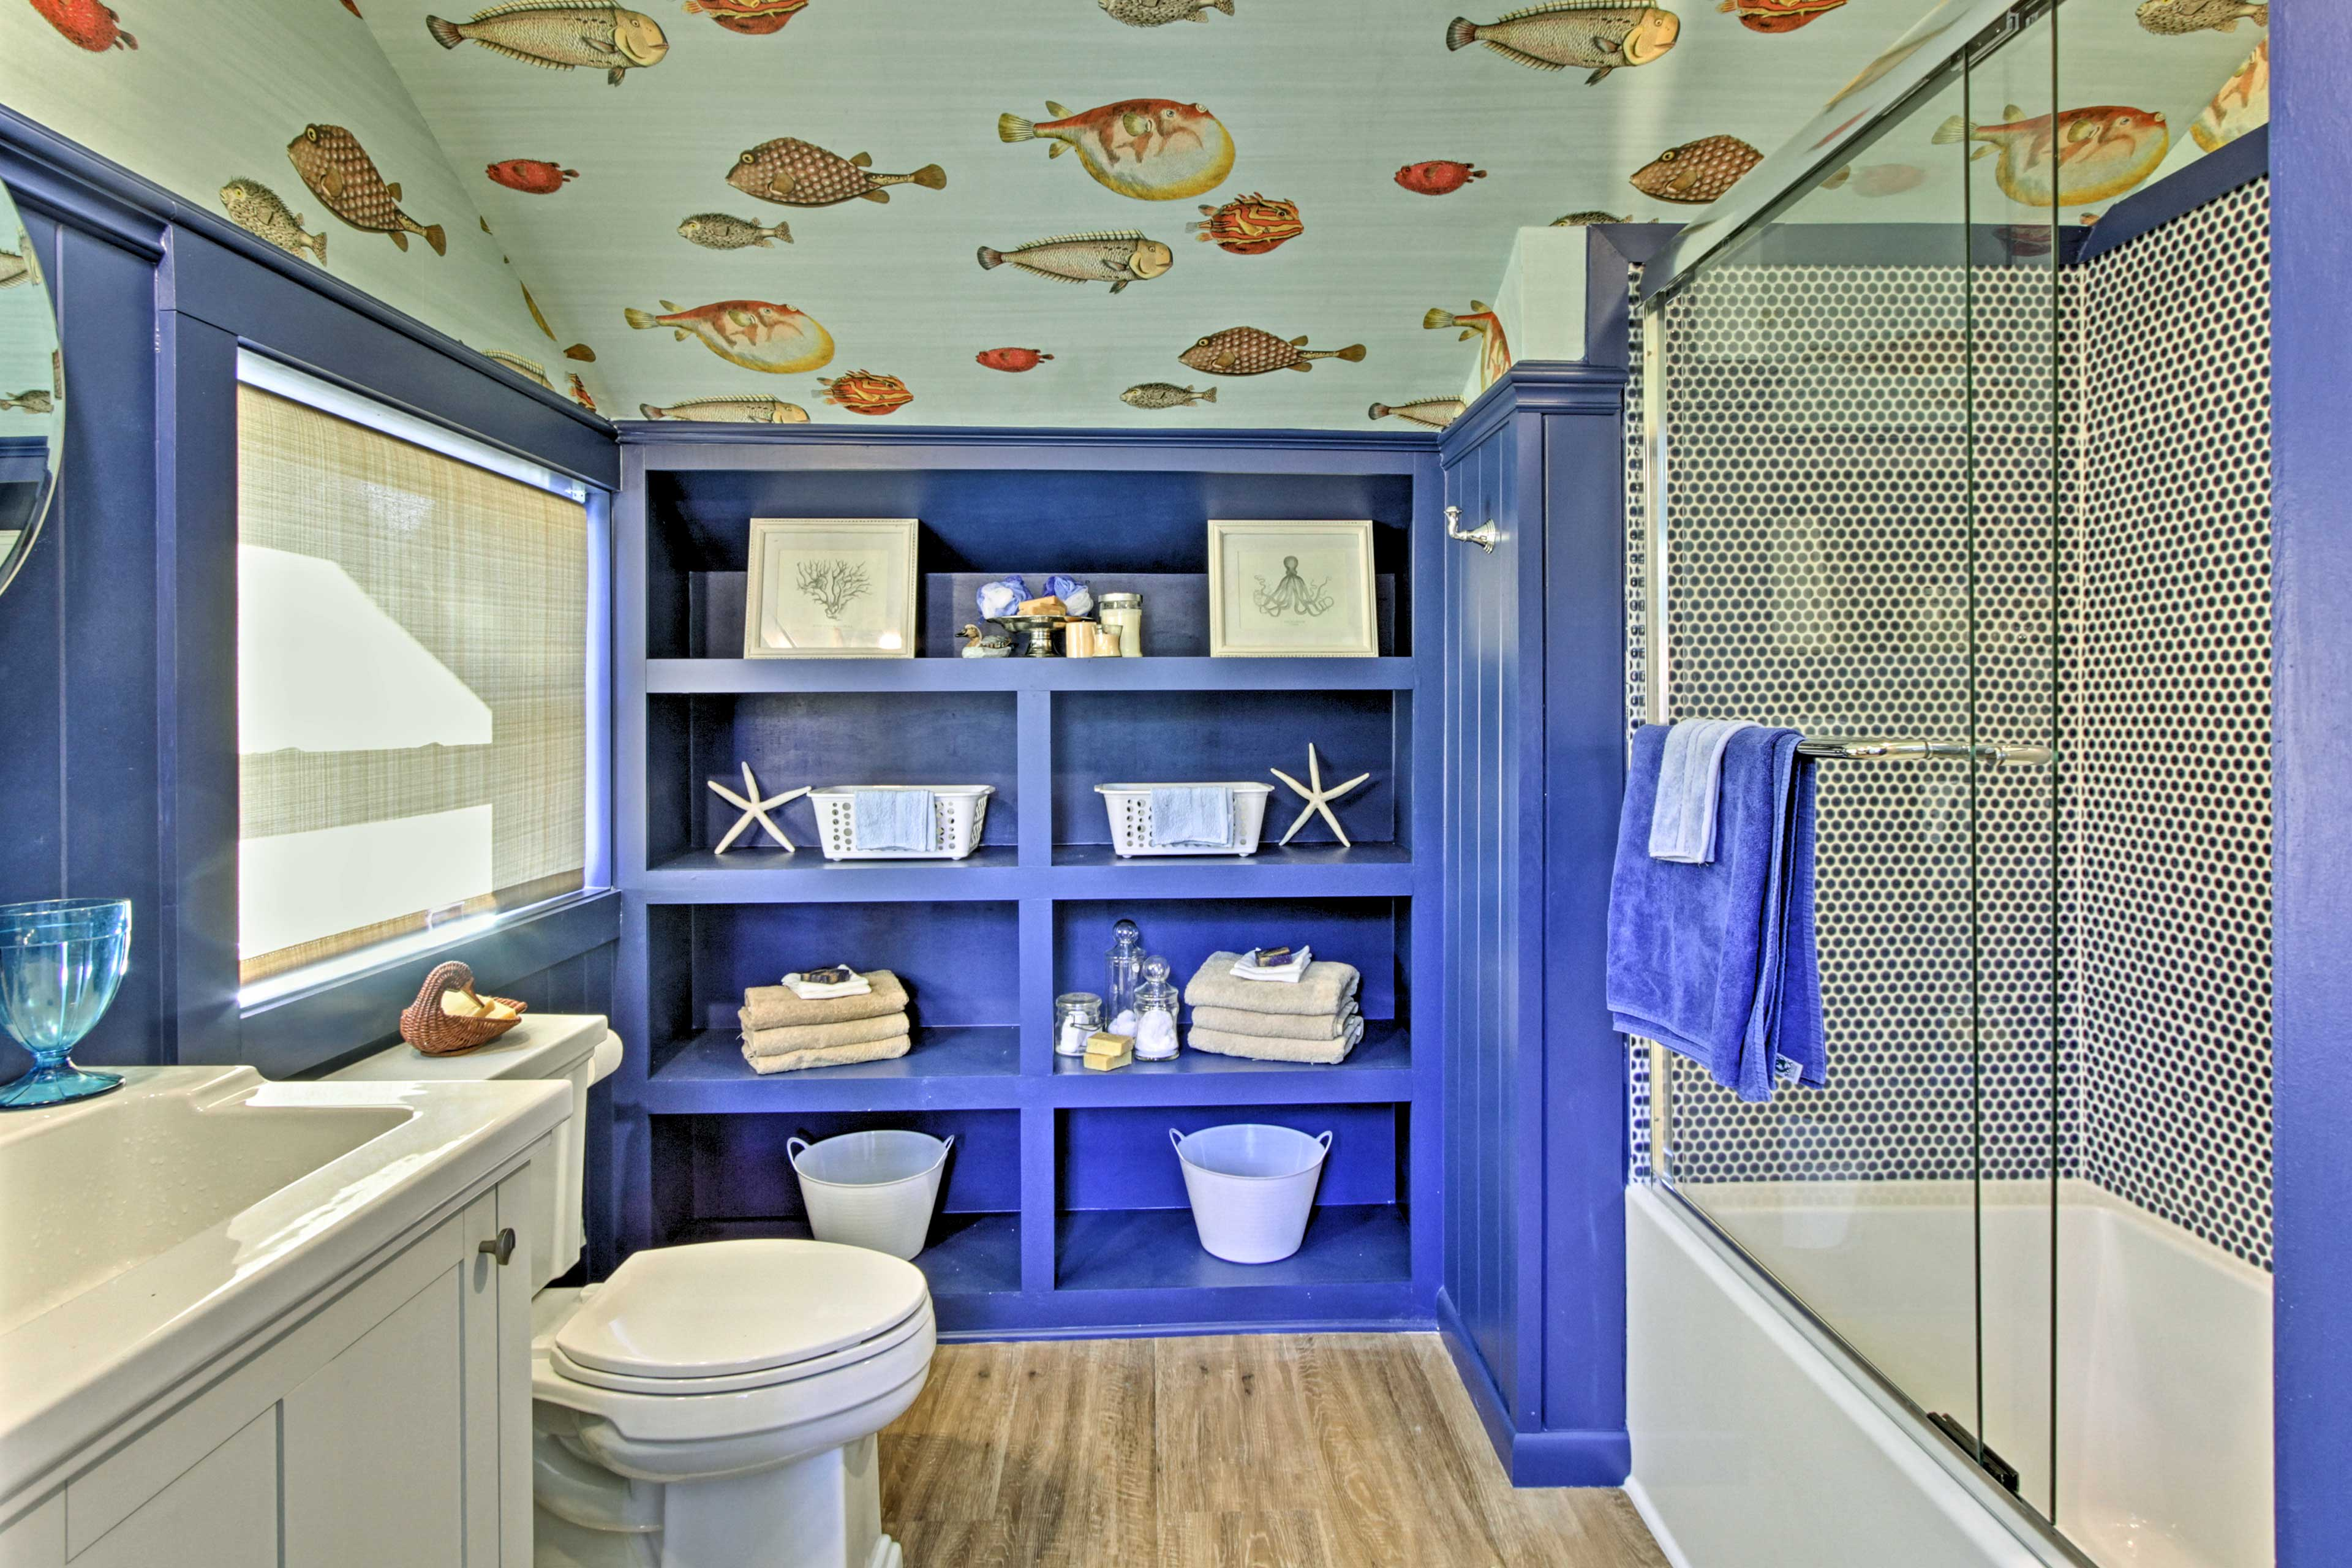 Take a shower or soak in the tub of this full bathroom.